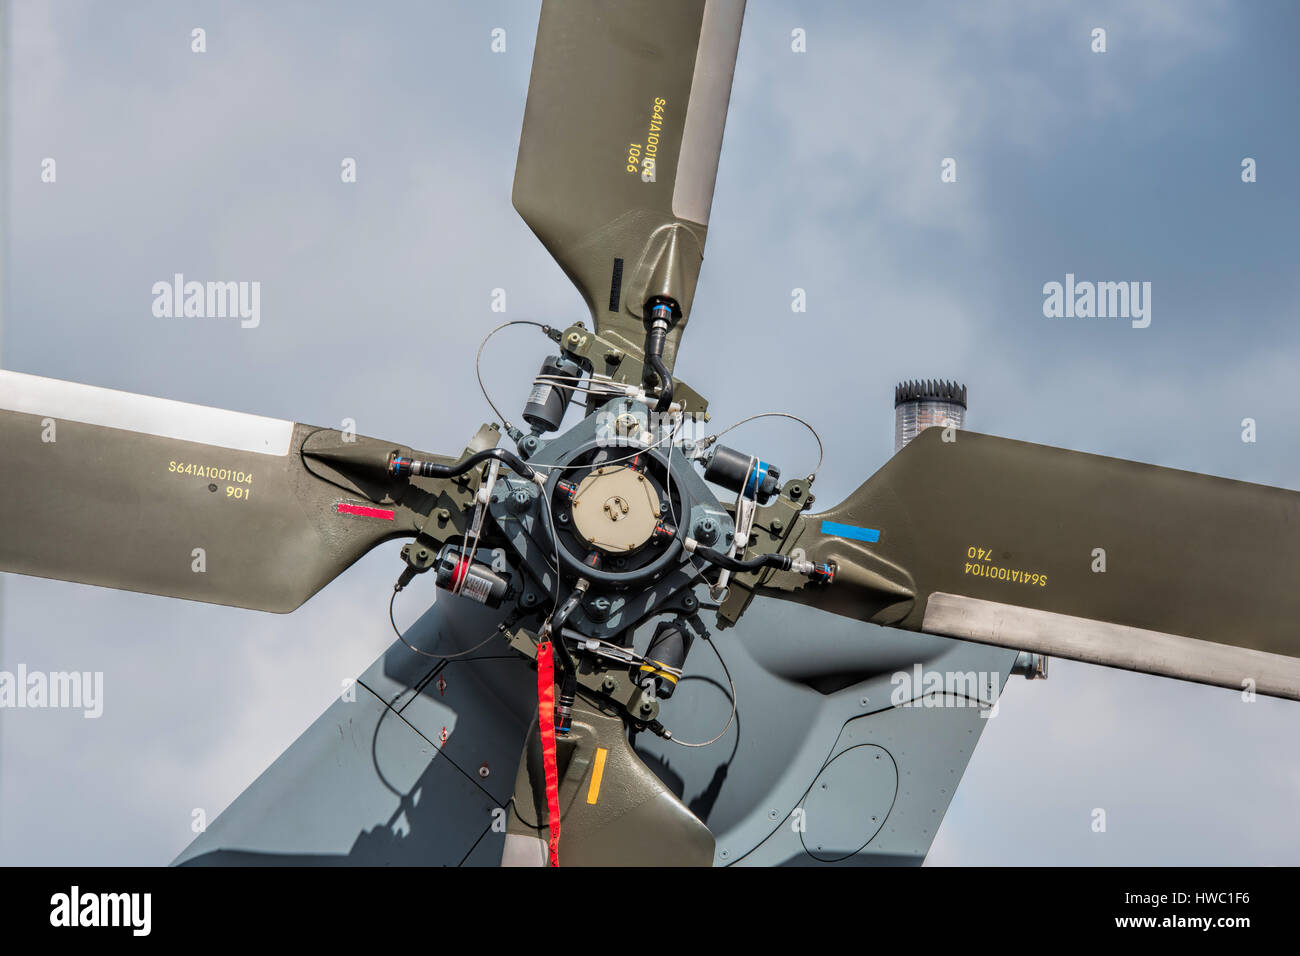 helicopter blades - Stock Image